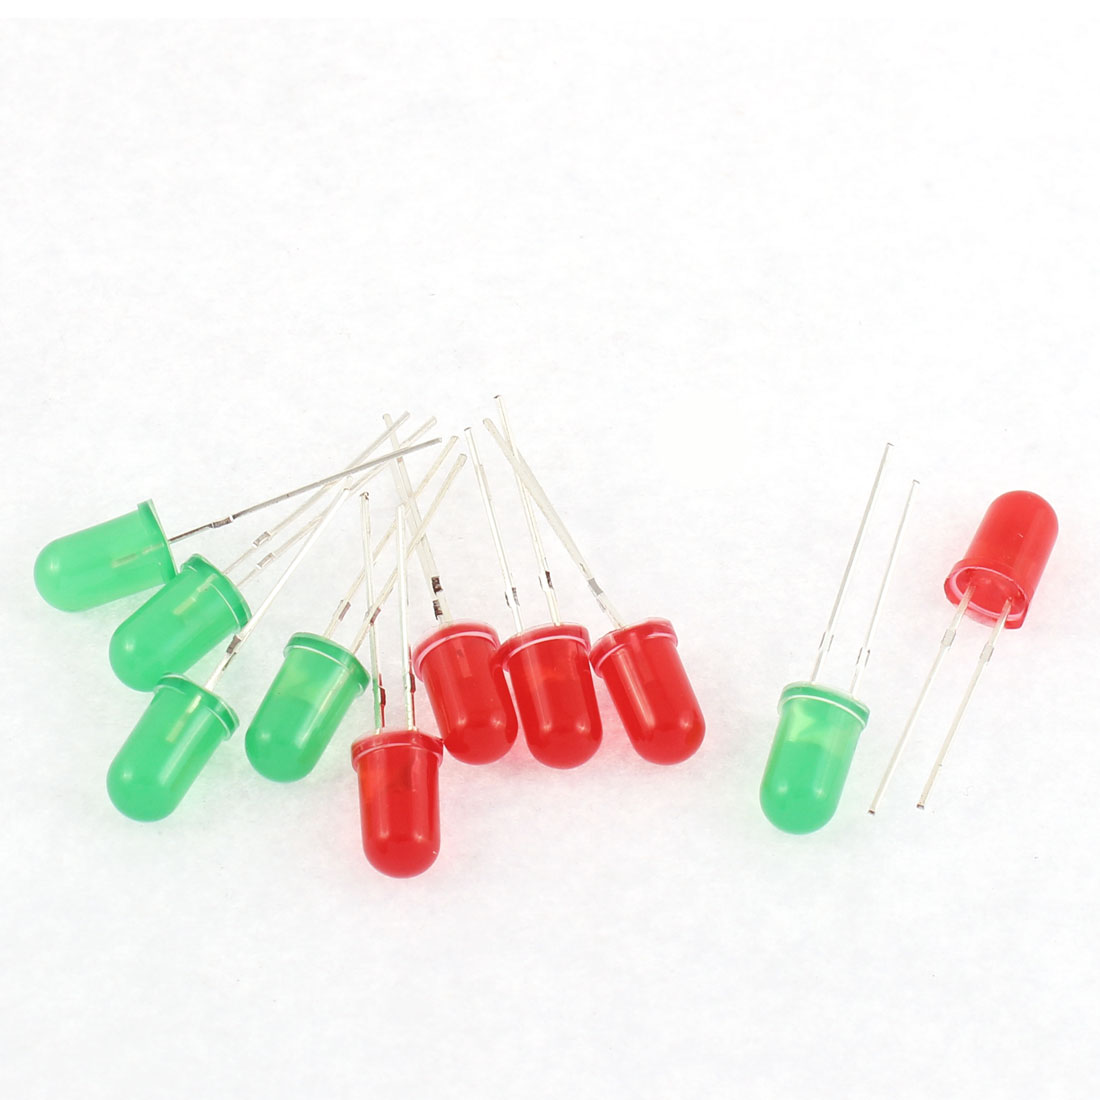 10pcs 5mm Green Red Light Emitters Emitting Diodes DIY LED Bulbs